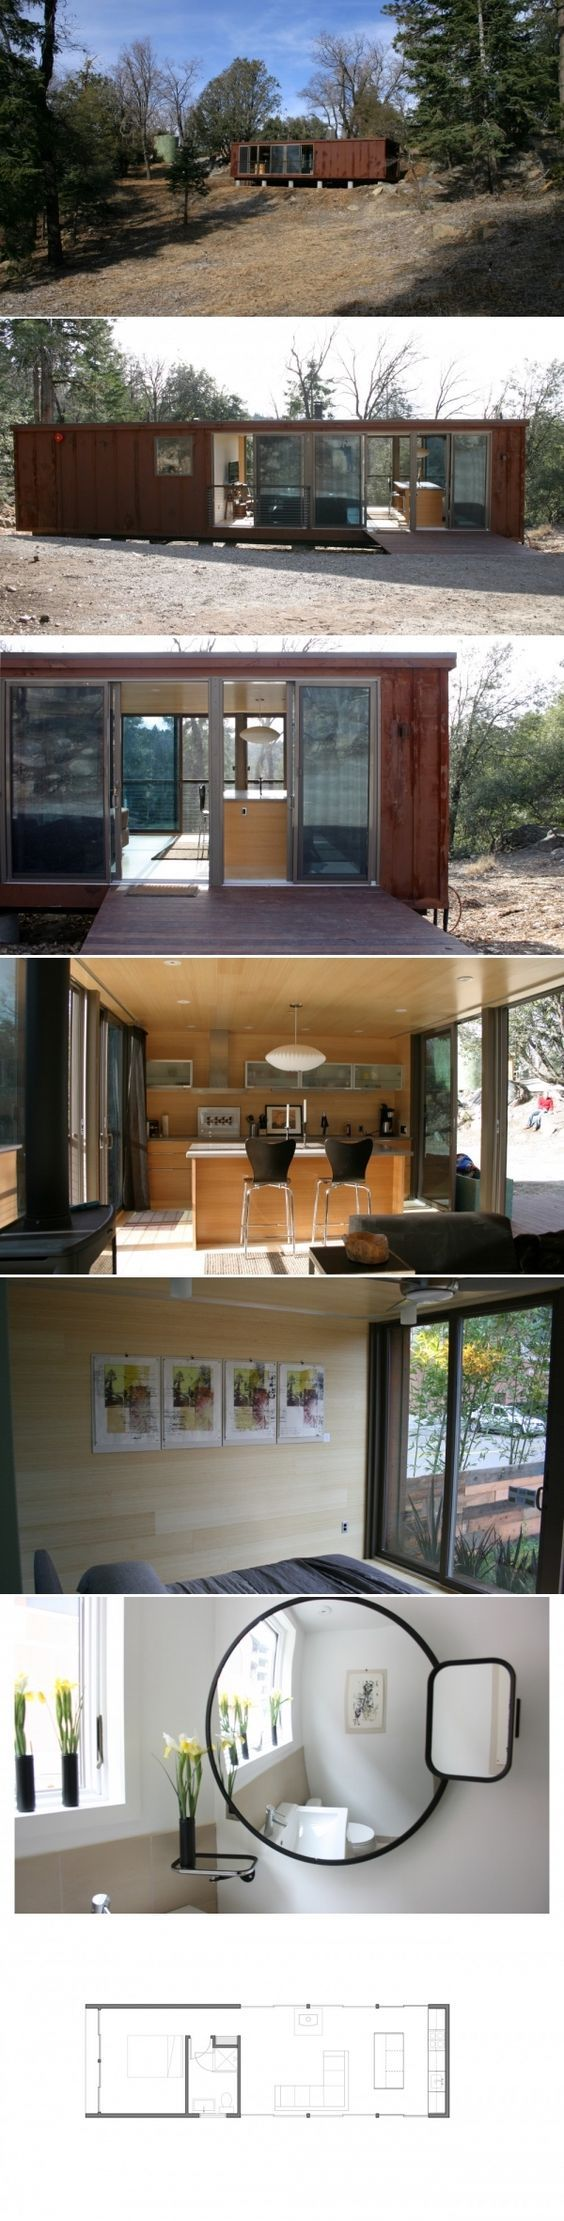 Nice 105 Impressive Tiny Houses That Maximize Function and Style https://decoratio.co/2017/03/105-impressive-tiny-houses-maximize-function-style/